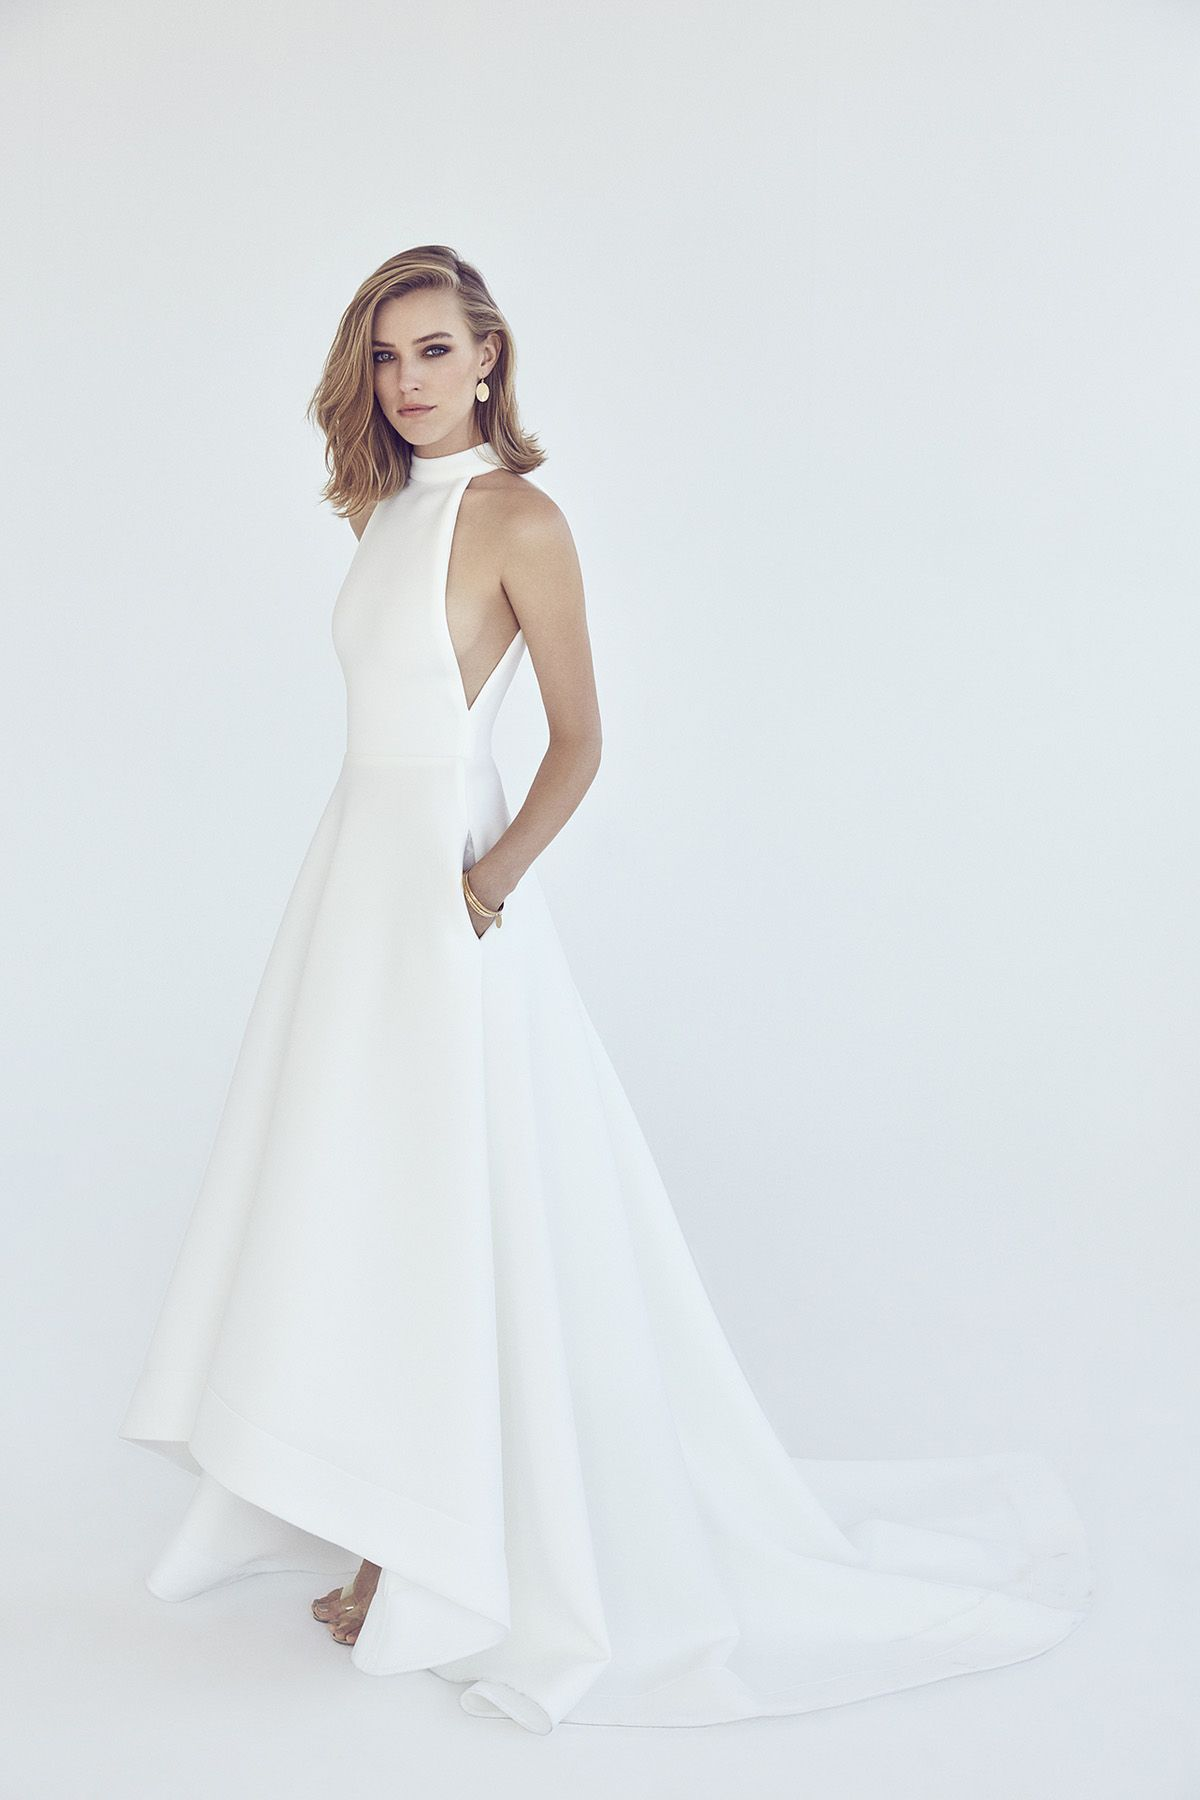 Suzanne Harward Ready To Wear 2017 | Gowns, Weddings and Clothes